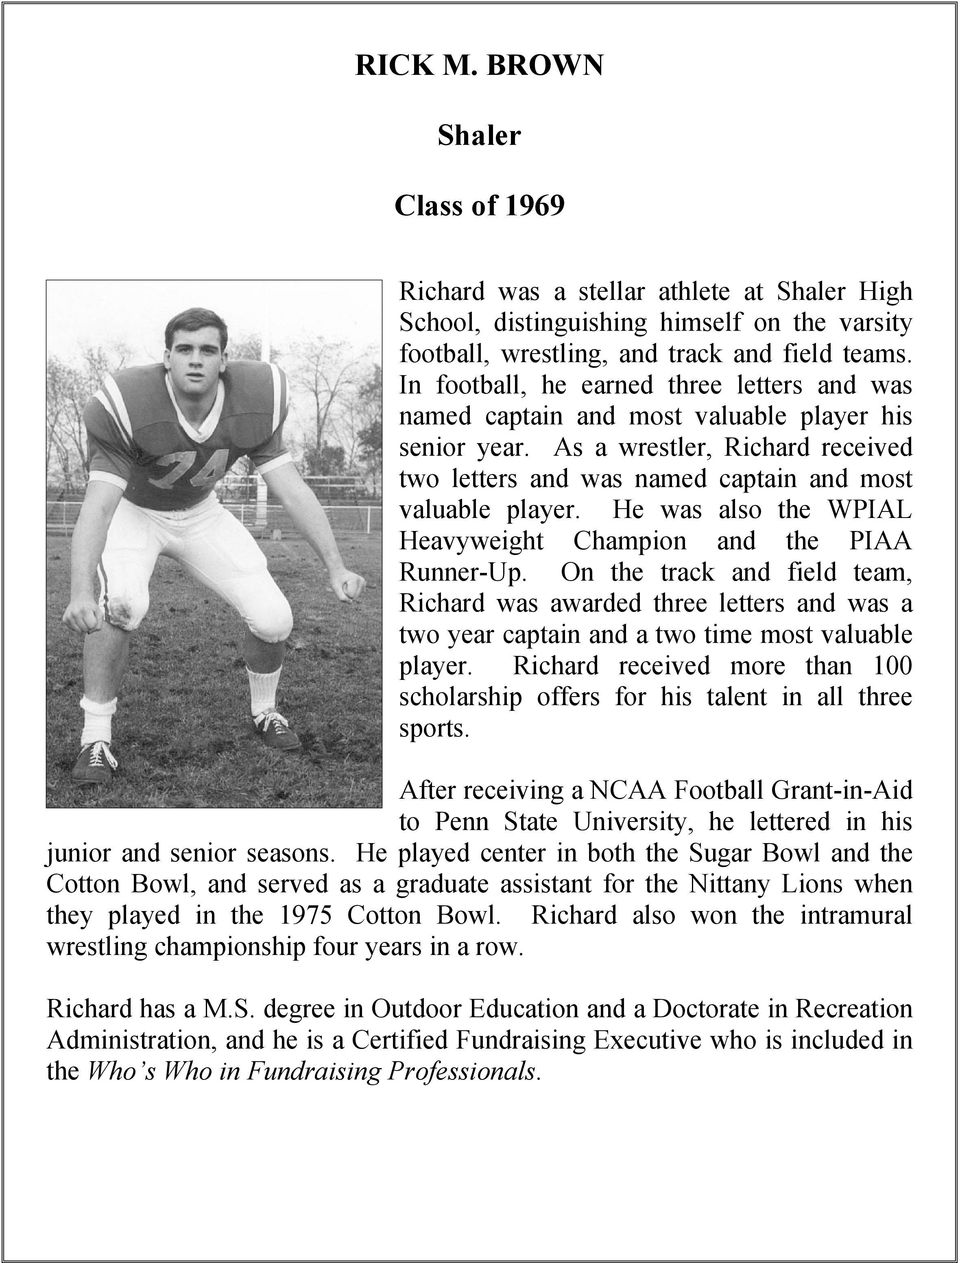 He was also the WPIAL Heavyweight Champion and the PIAA Runner-Up. On the track and field team, Richard was awarded three letters and was a two year captain and a two time most valuable player.